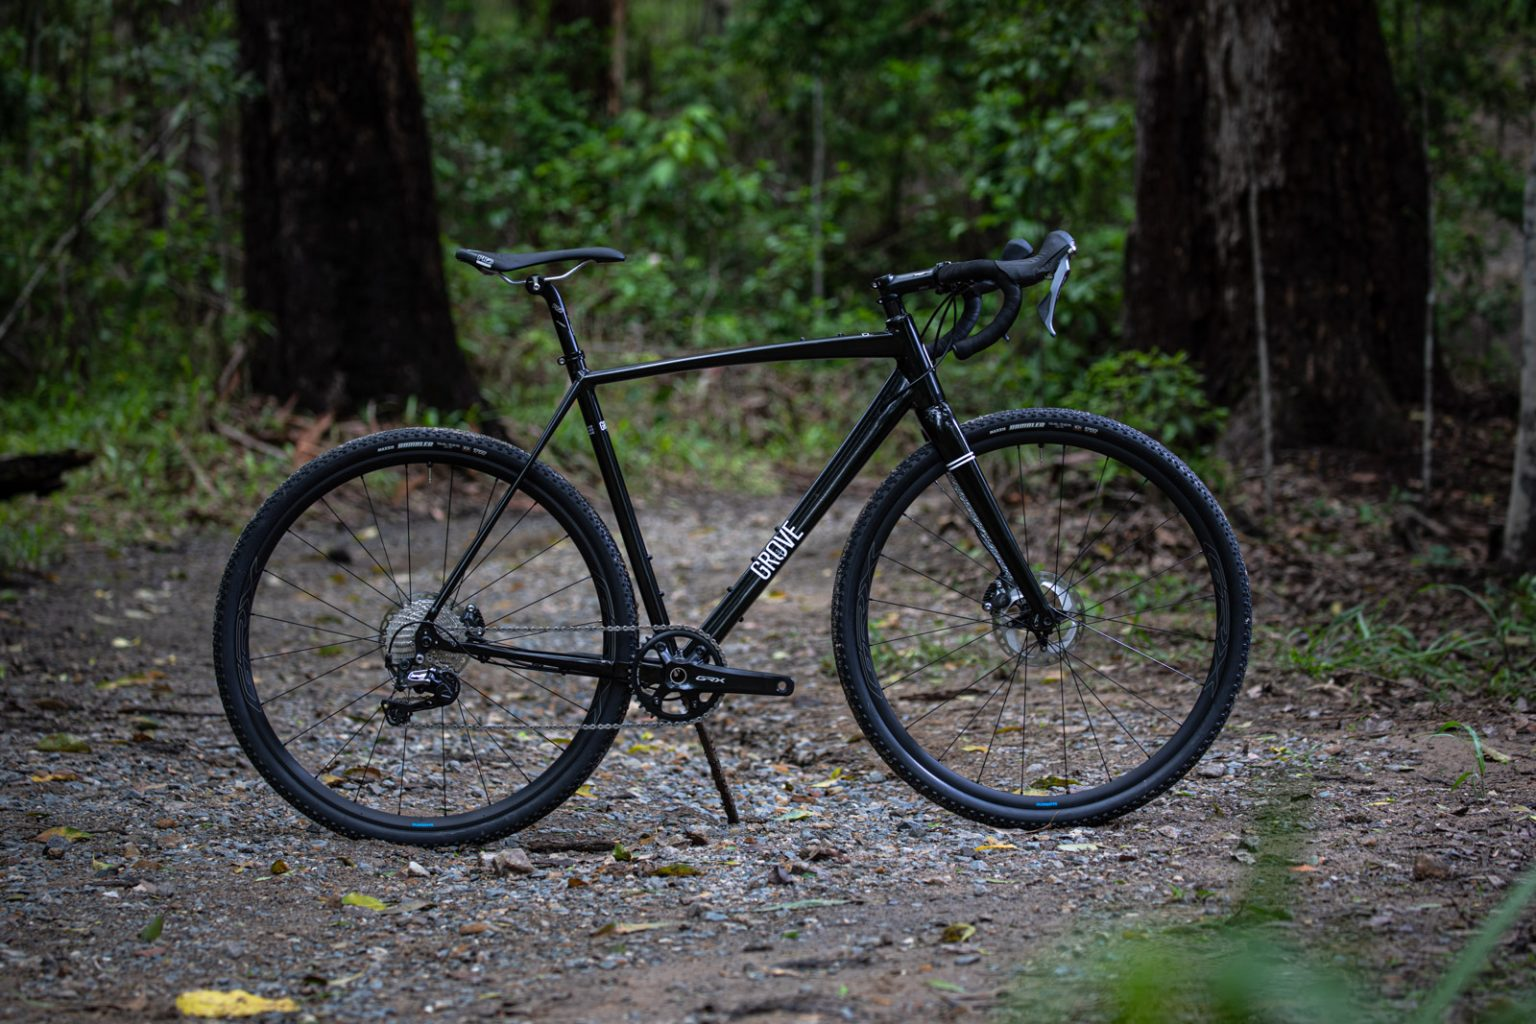 R.A.D Review: Cyclist Magazine test the R.A.D with Shimano GRX